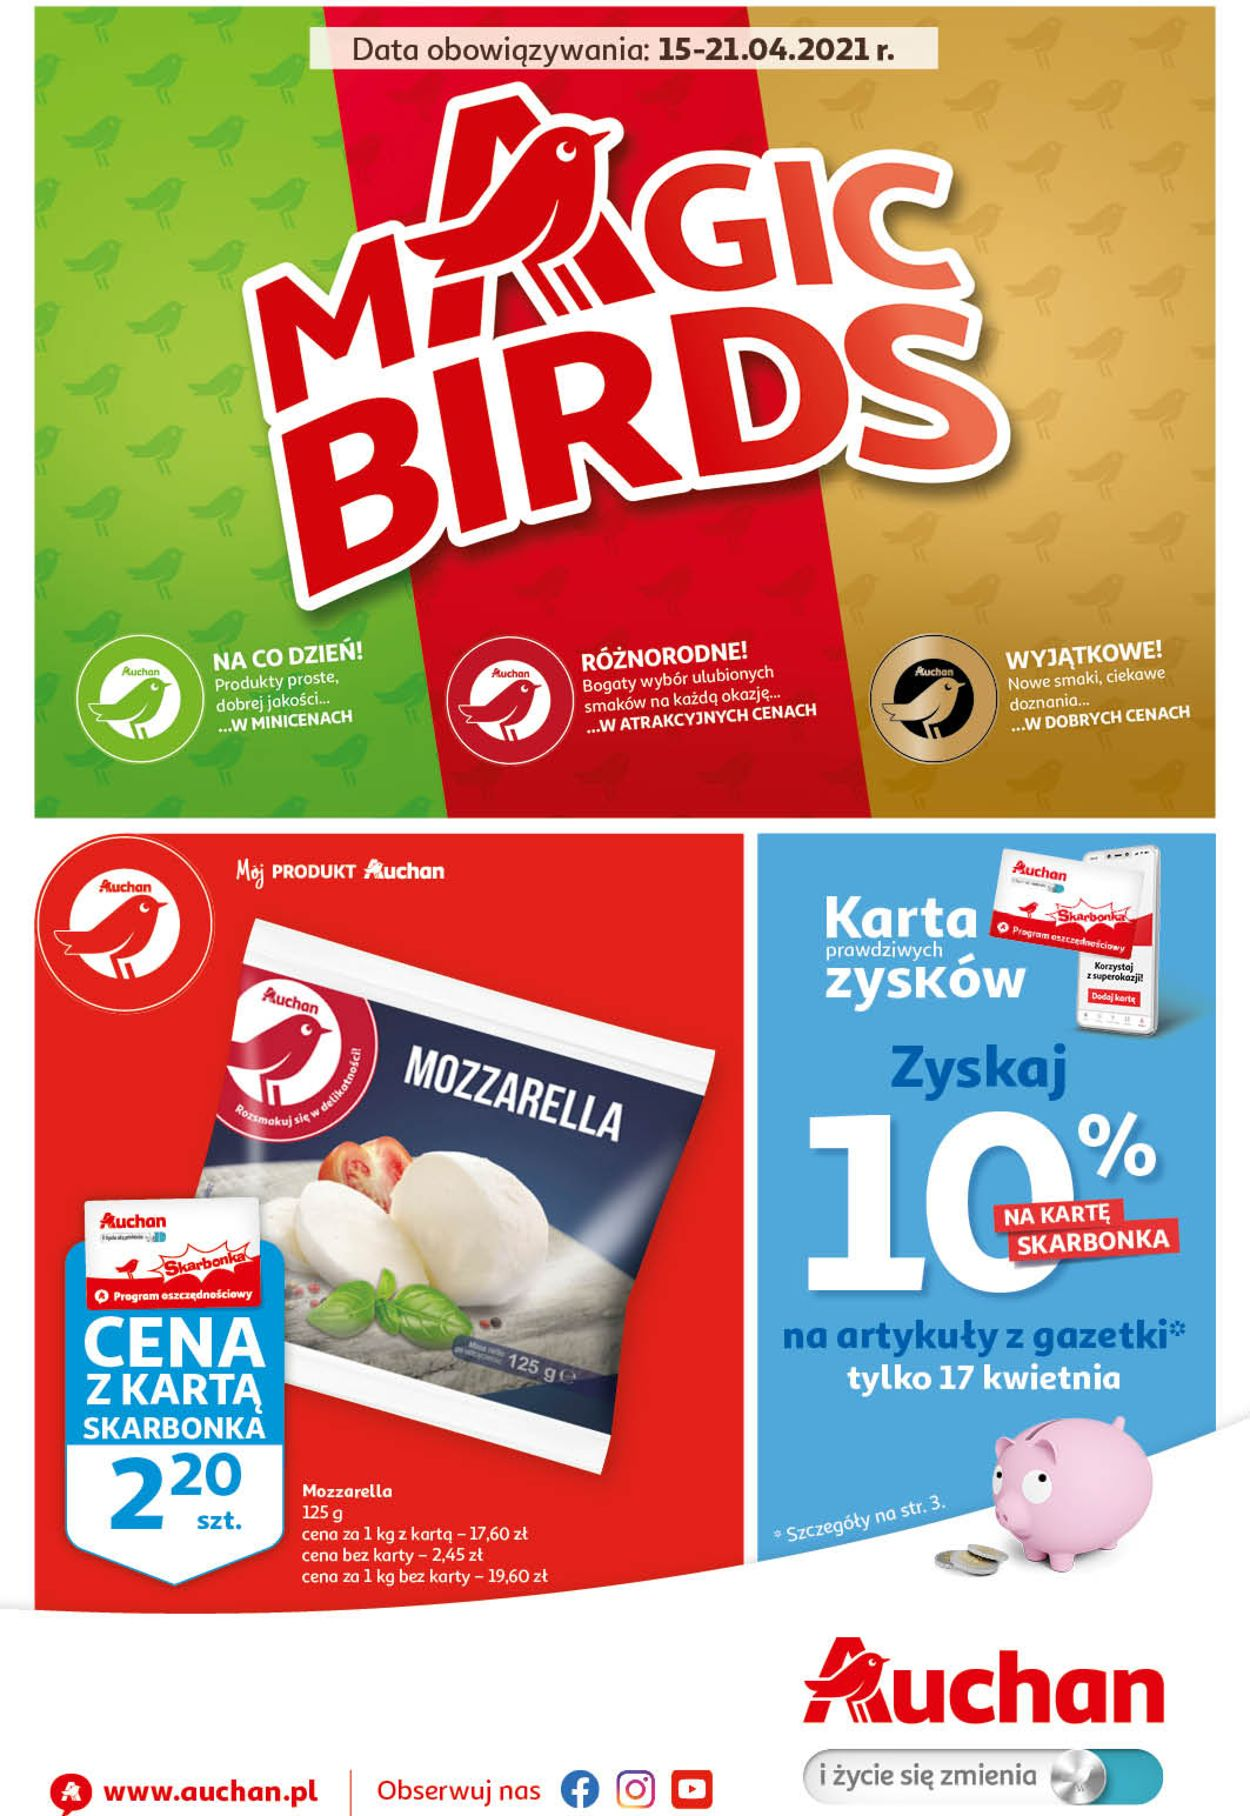 Gazetka promocyjna Auchan Magic Birds Hipermarkety - 15.04-21.04.2021